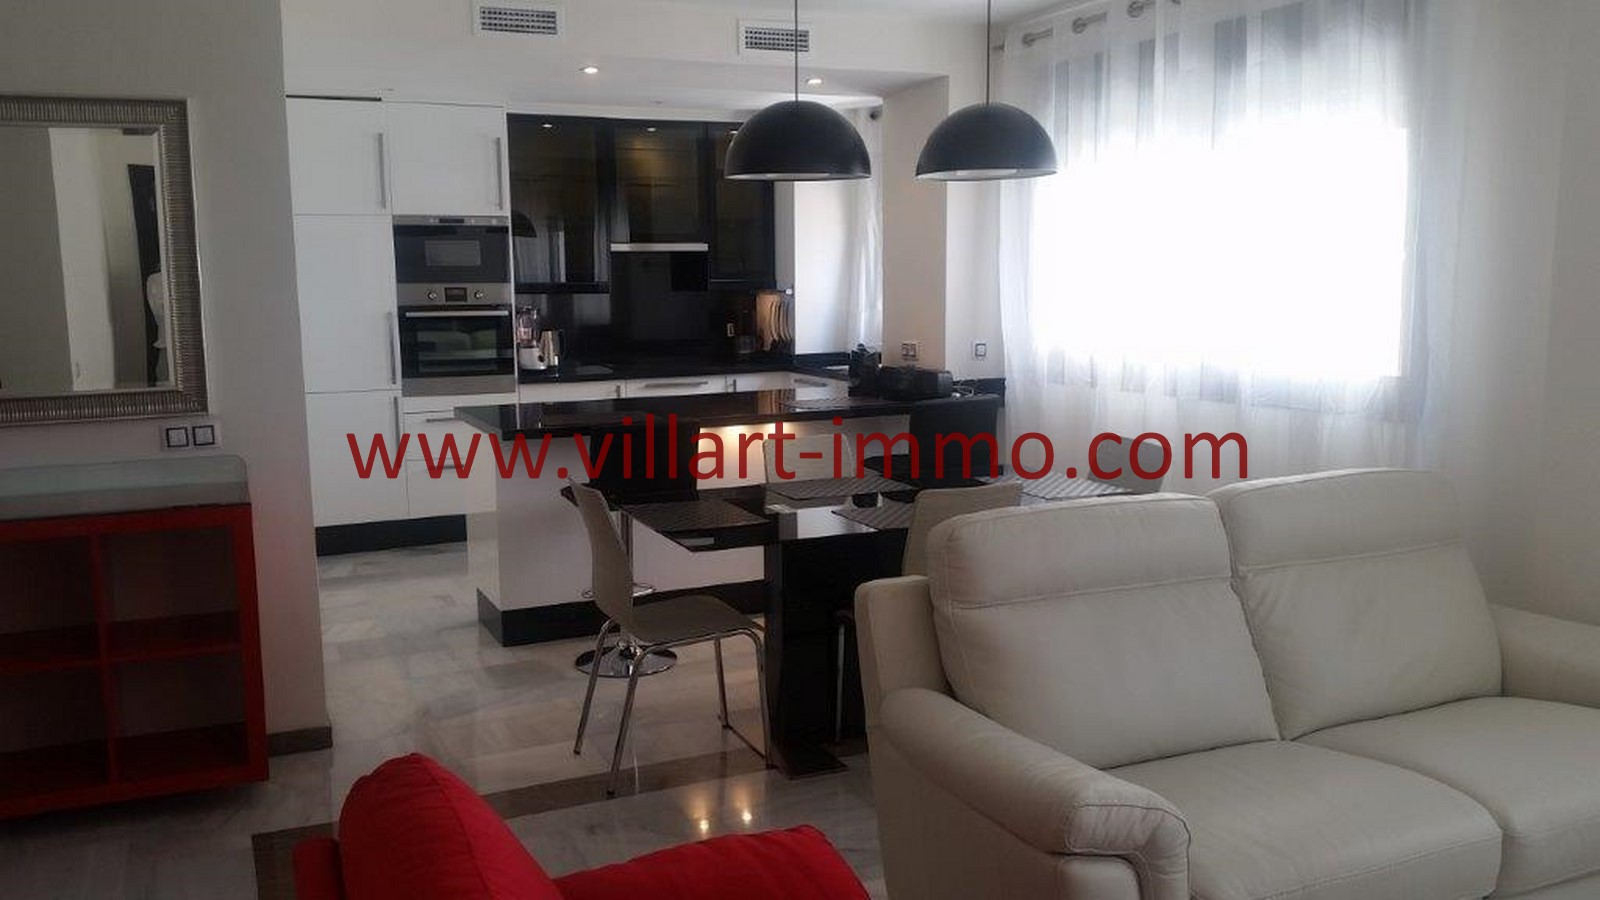 1-location-appartement-meuble-tanger-salon-l975-villart-immo